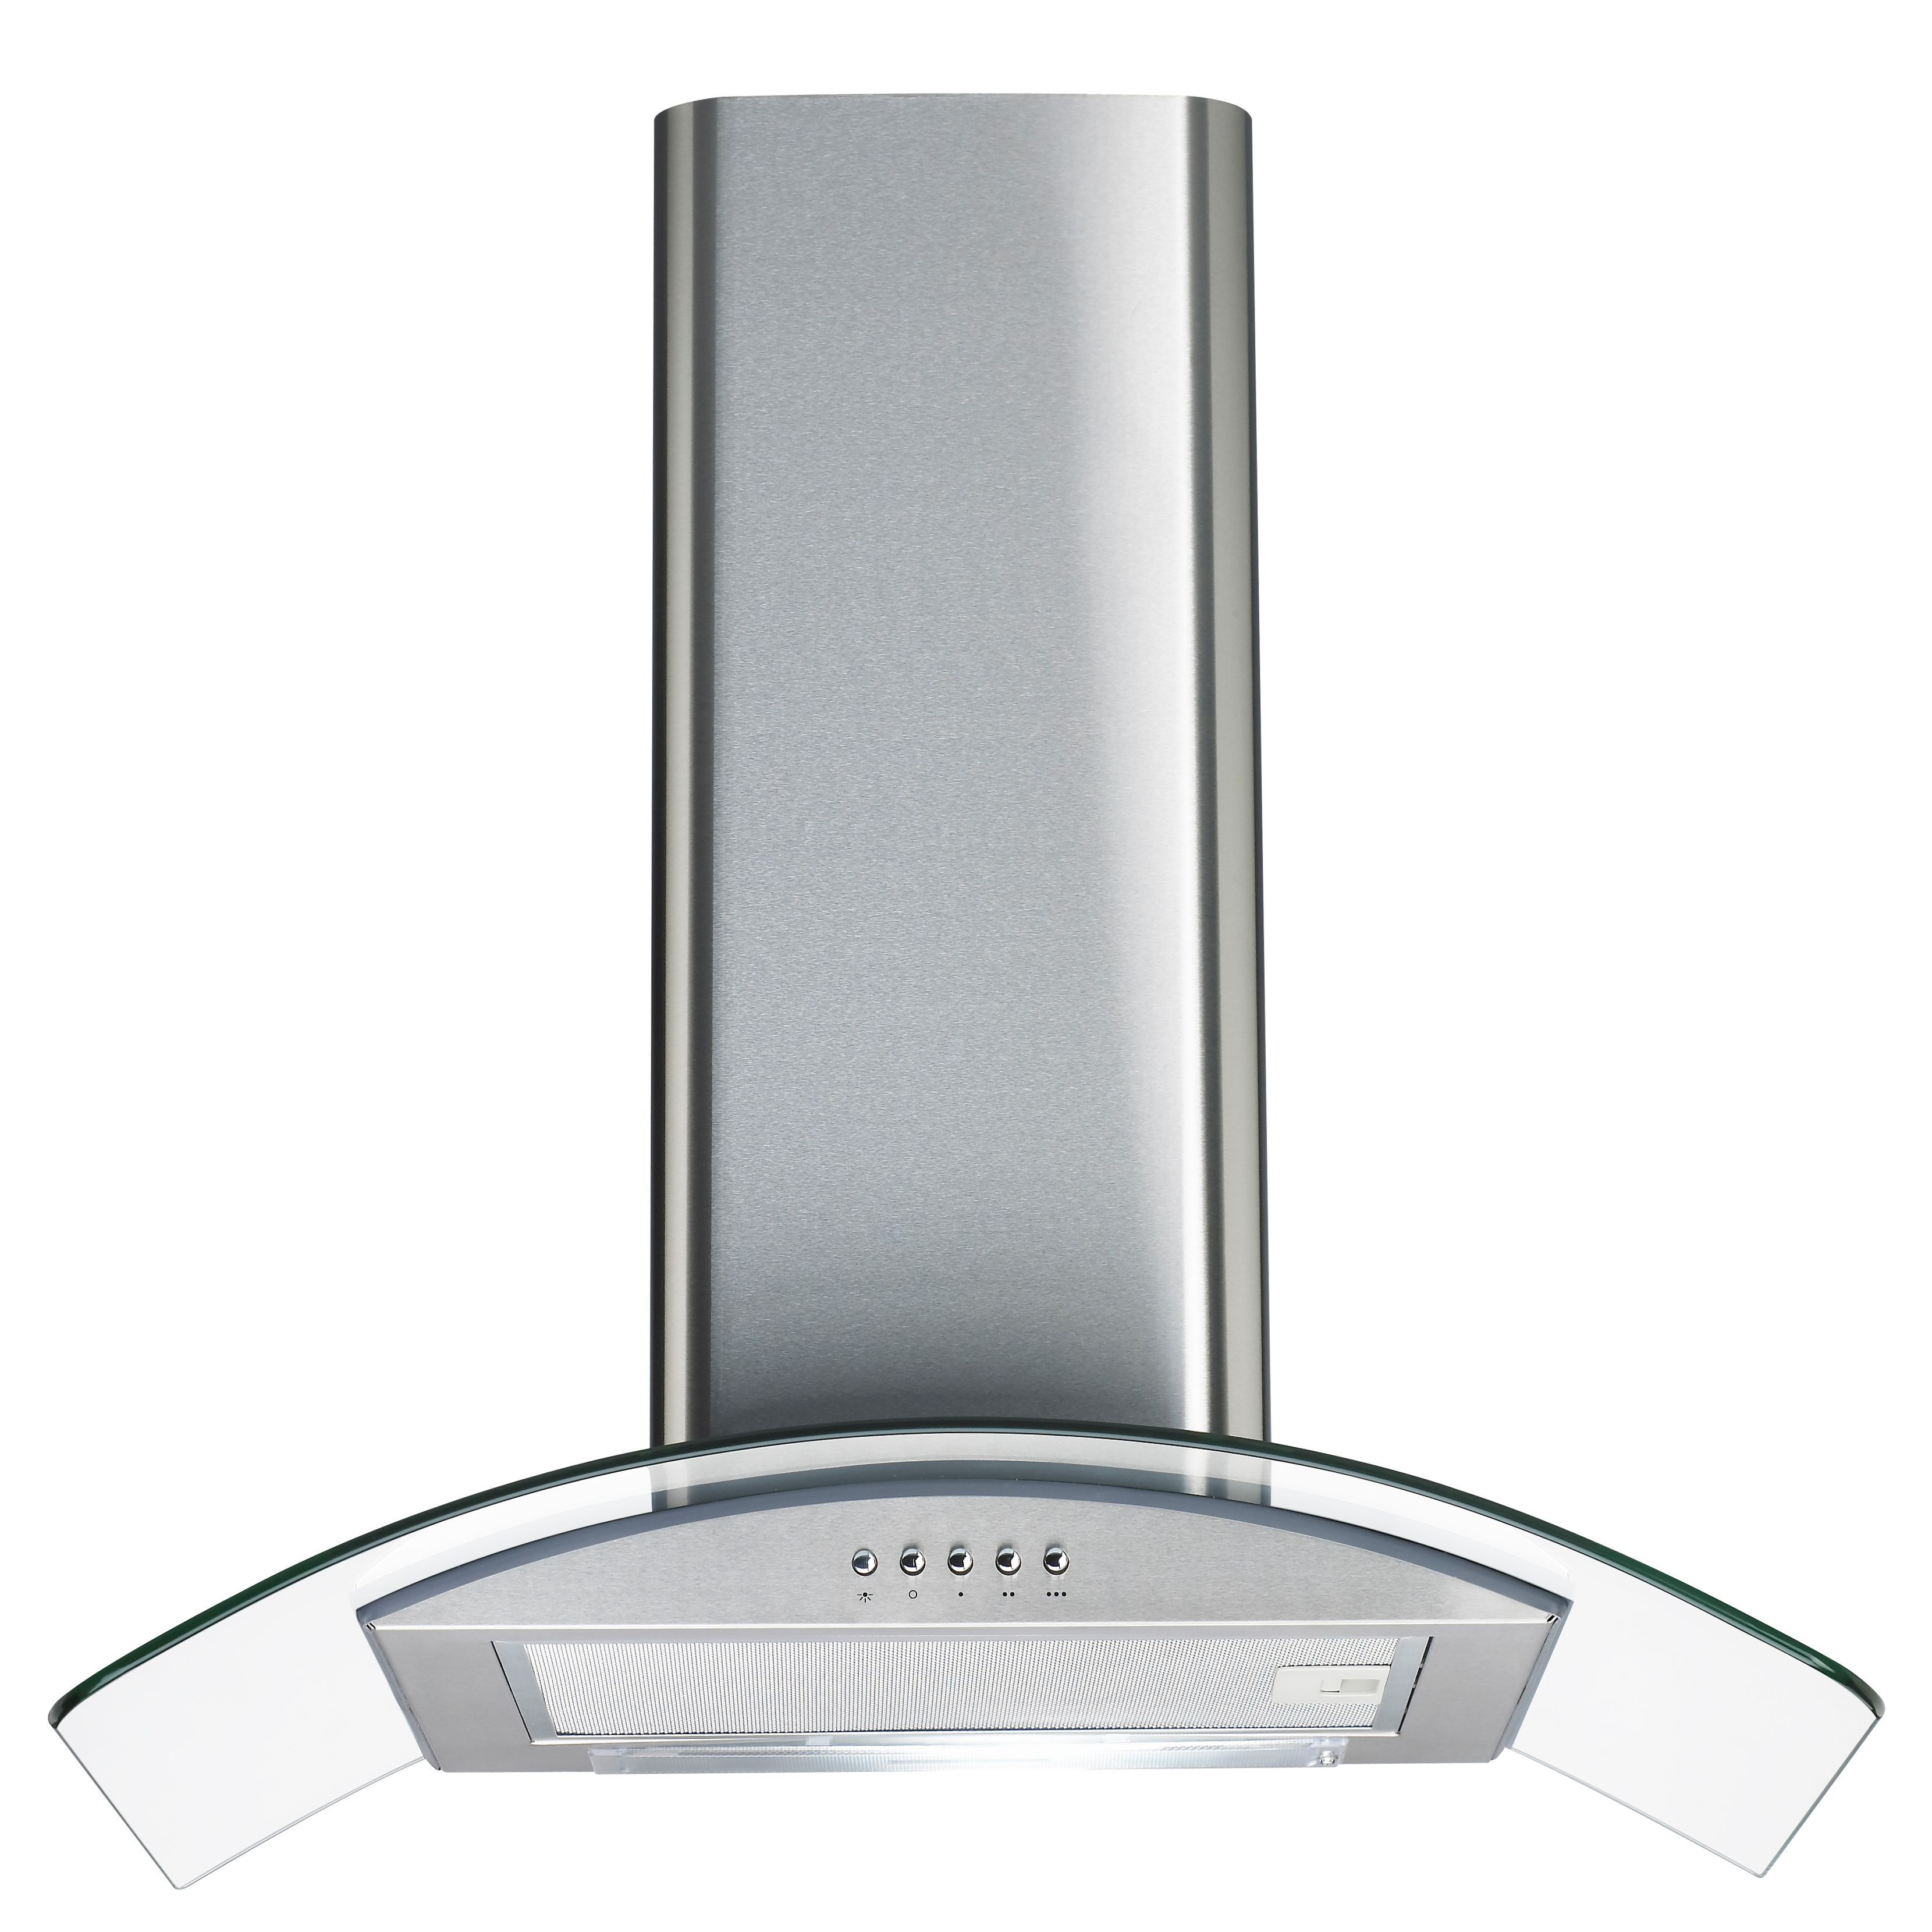 Cata cgk60ss steel glass curved cooker hood w 600mm cata cgk60ss steel glass curved cooker hood w 600mm departments diy at bq asfbconference2016 Images